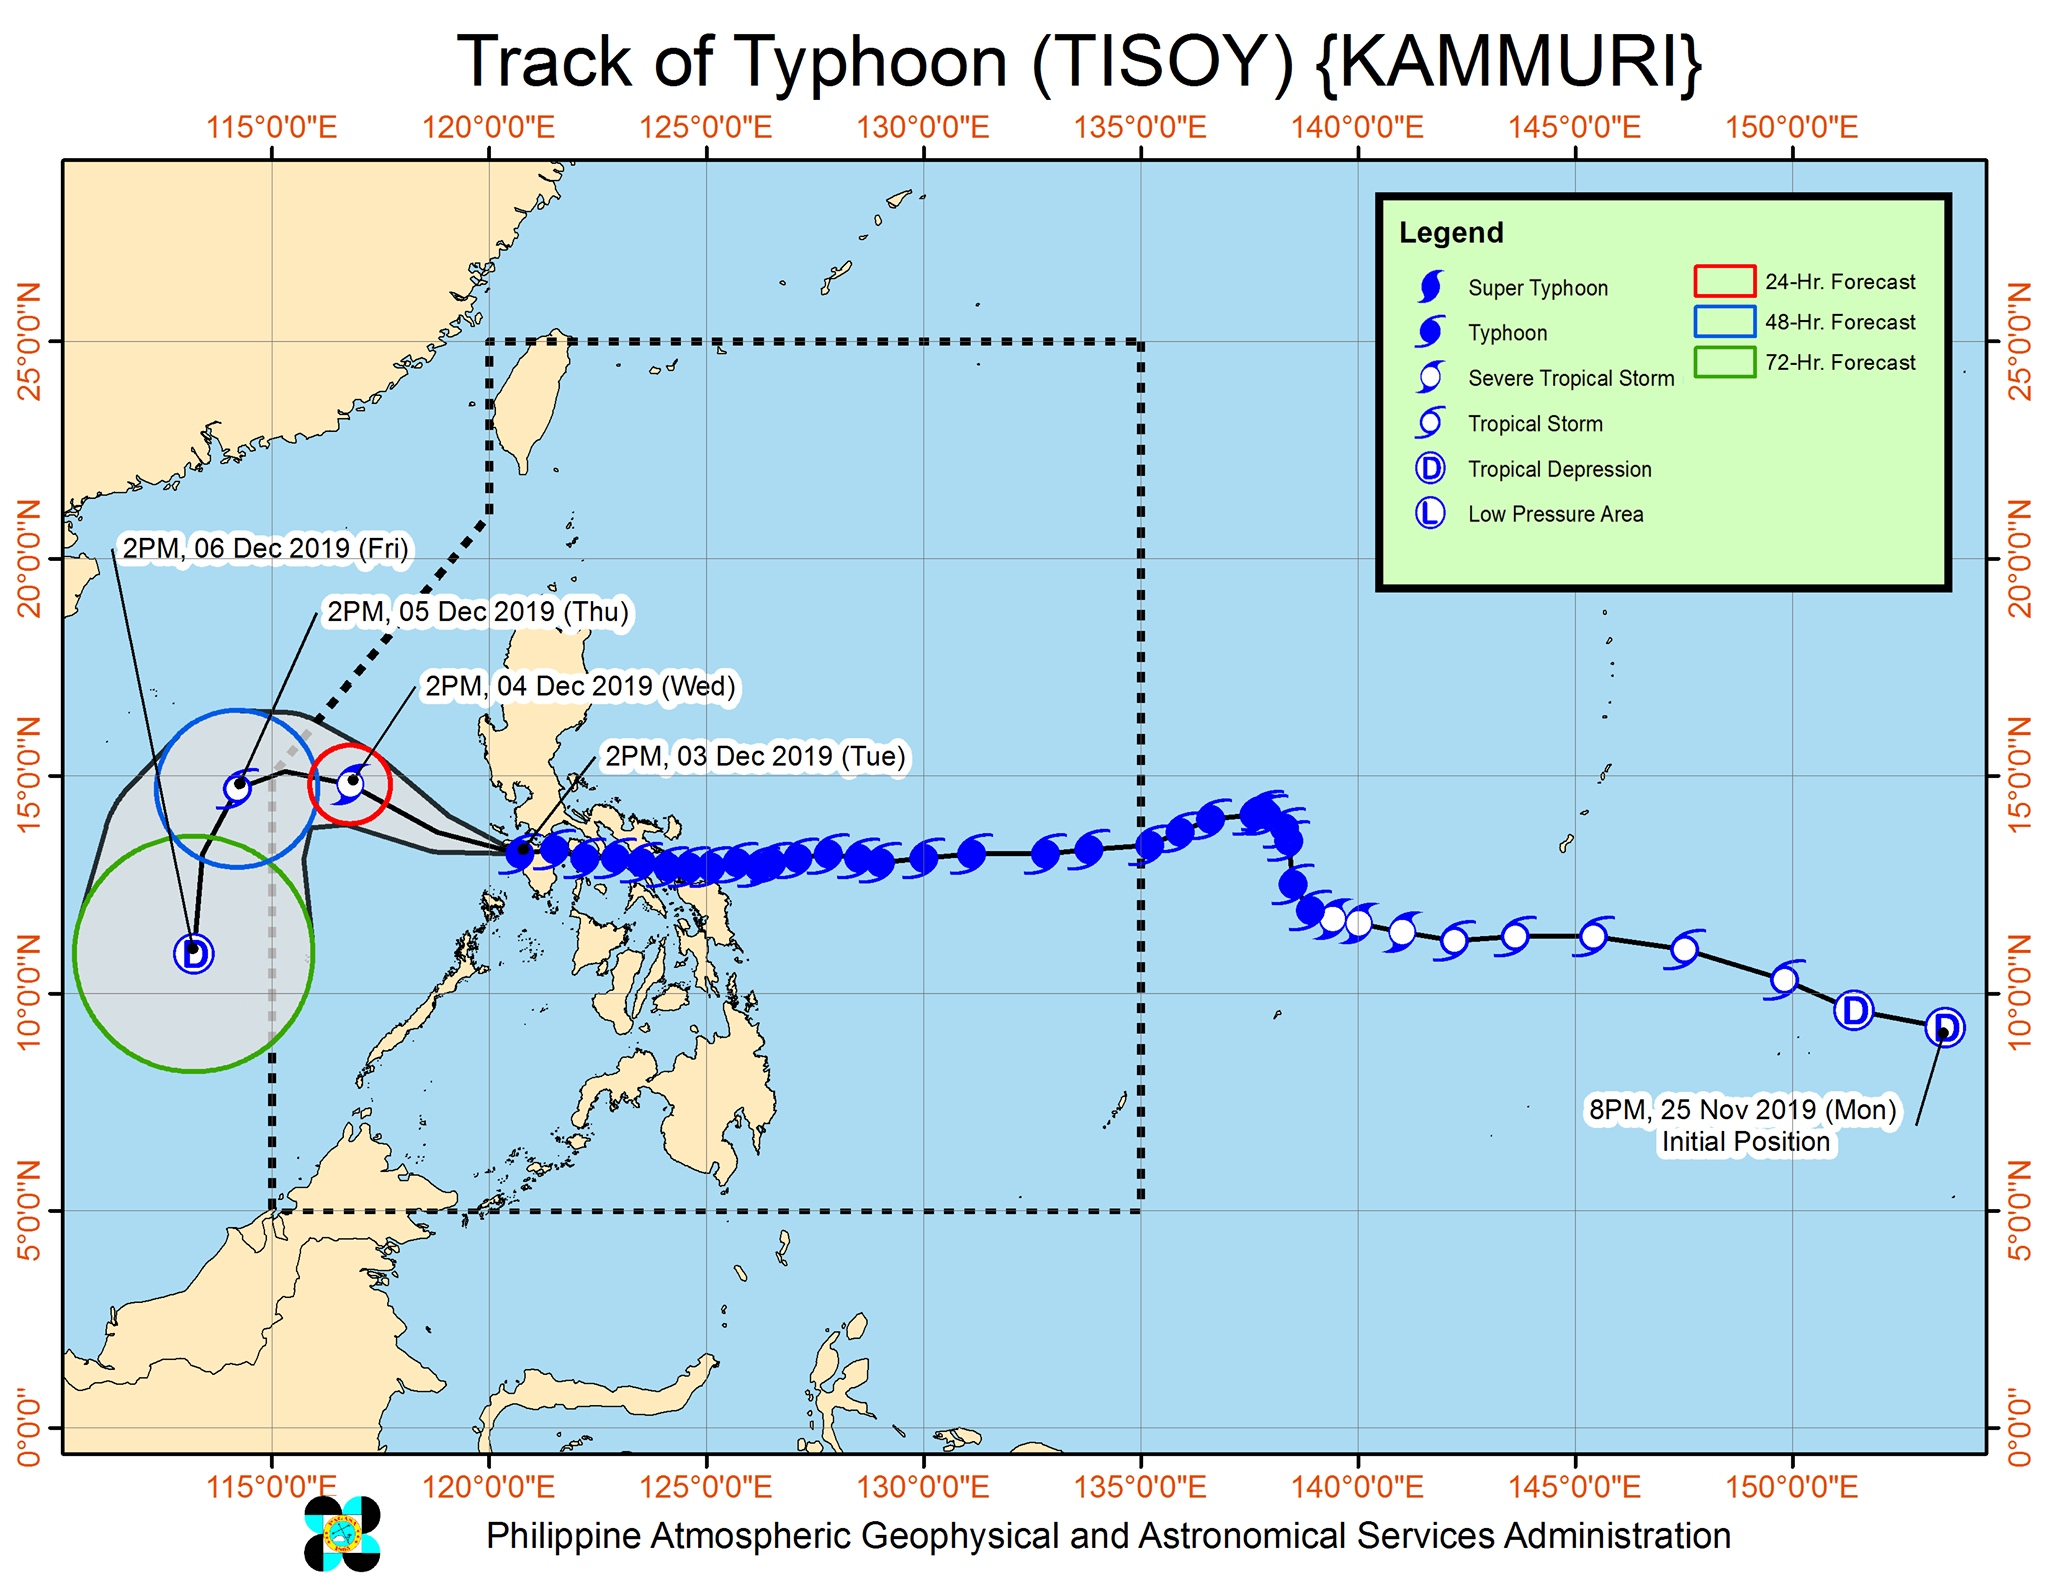 Forecast track of Typhoon Tisoy (Kammuri) as of December 3, 2019, 5 pm. Image from PAGASA